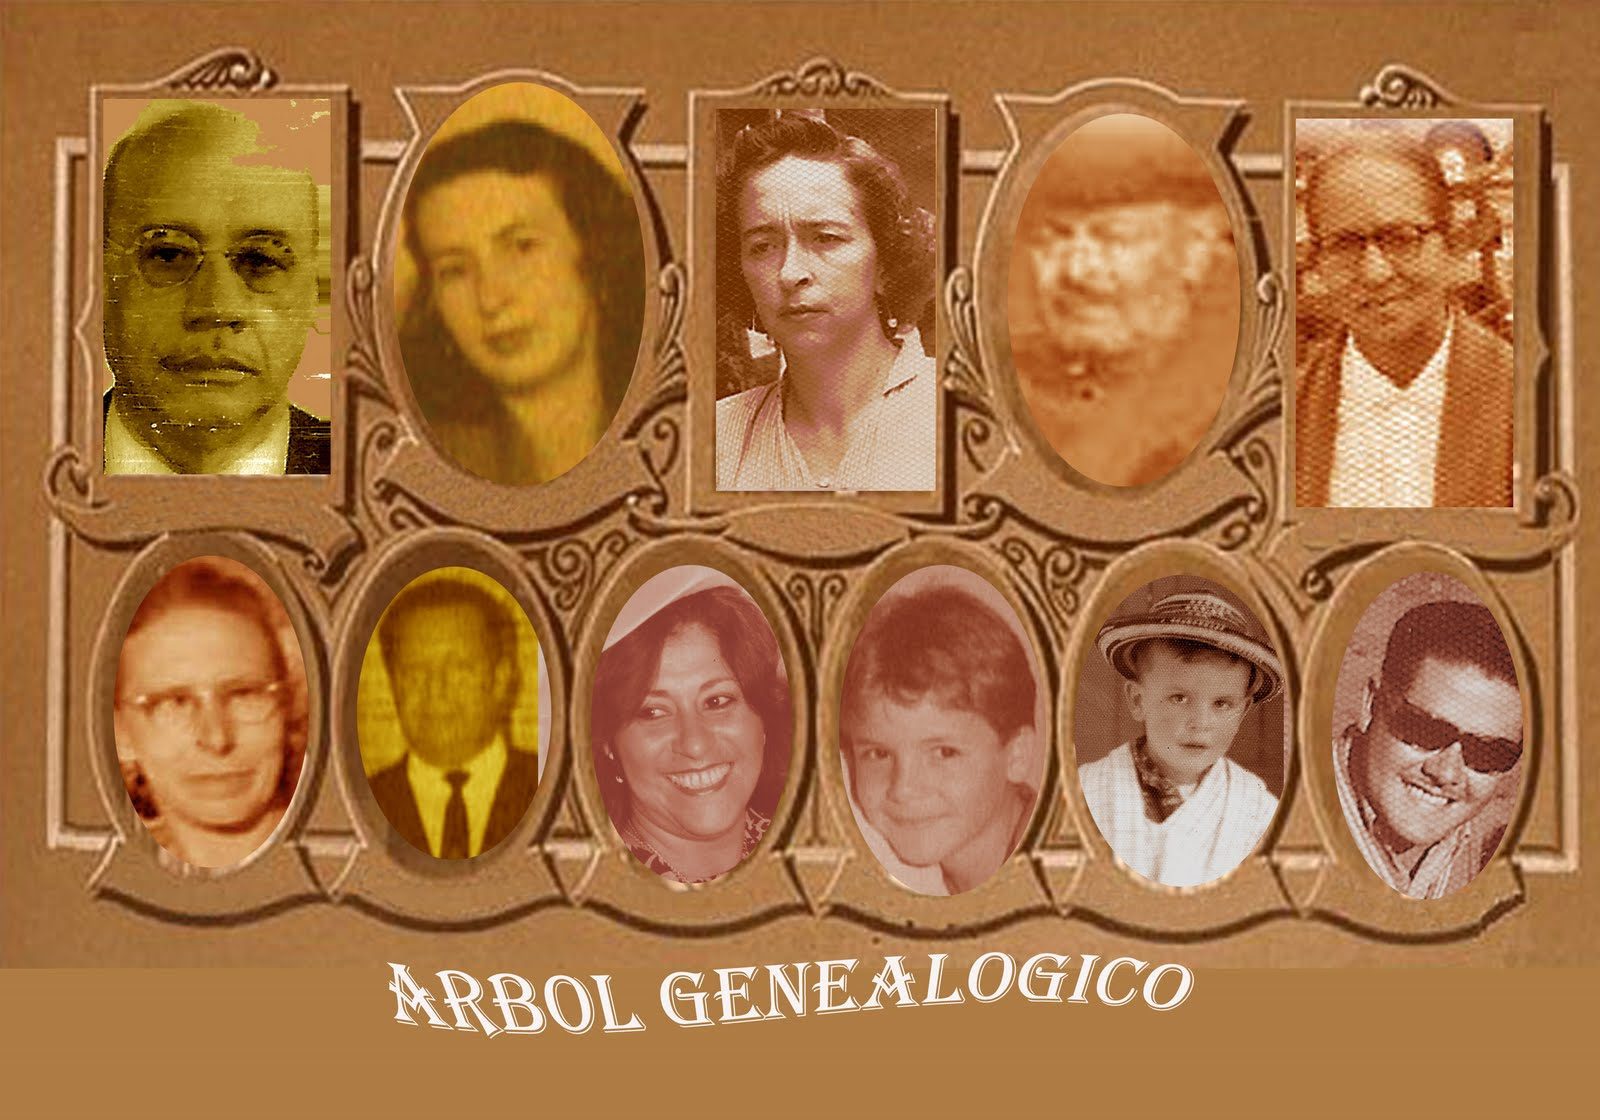 ARBOL GENEALOGICO